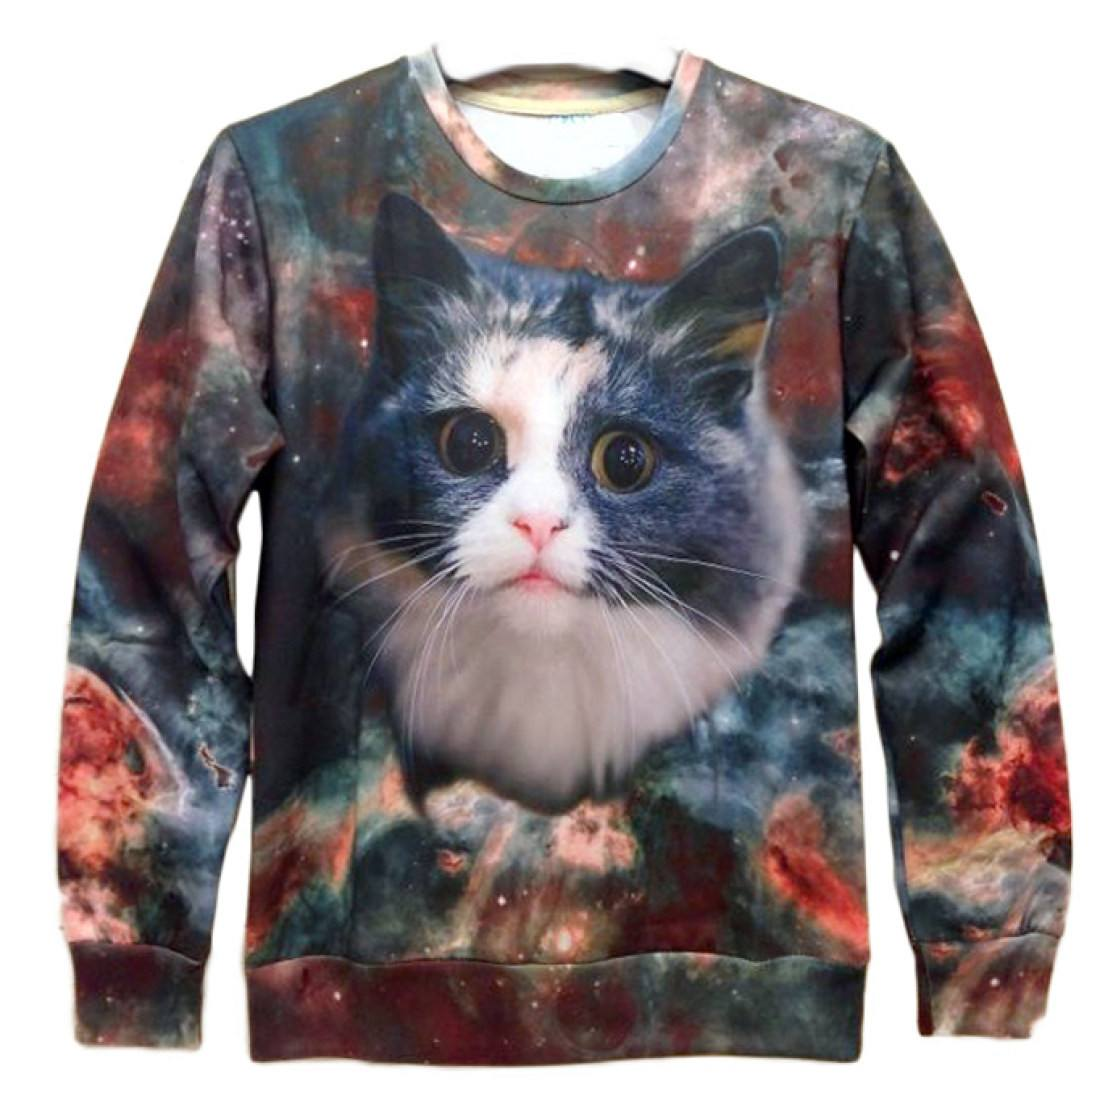 Space Kitty Universe Graphic Print Crew Neck Sweater for Cat Lovers